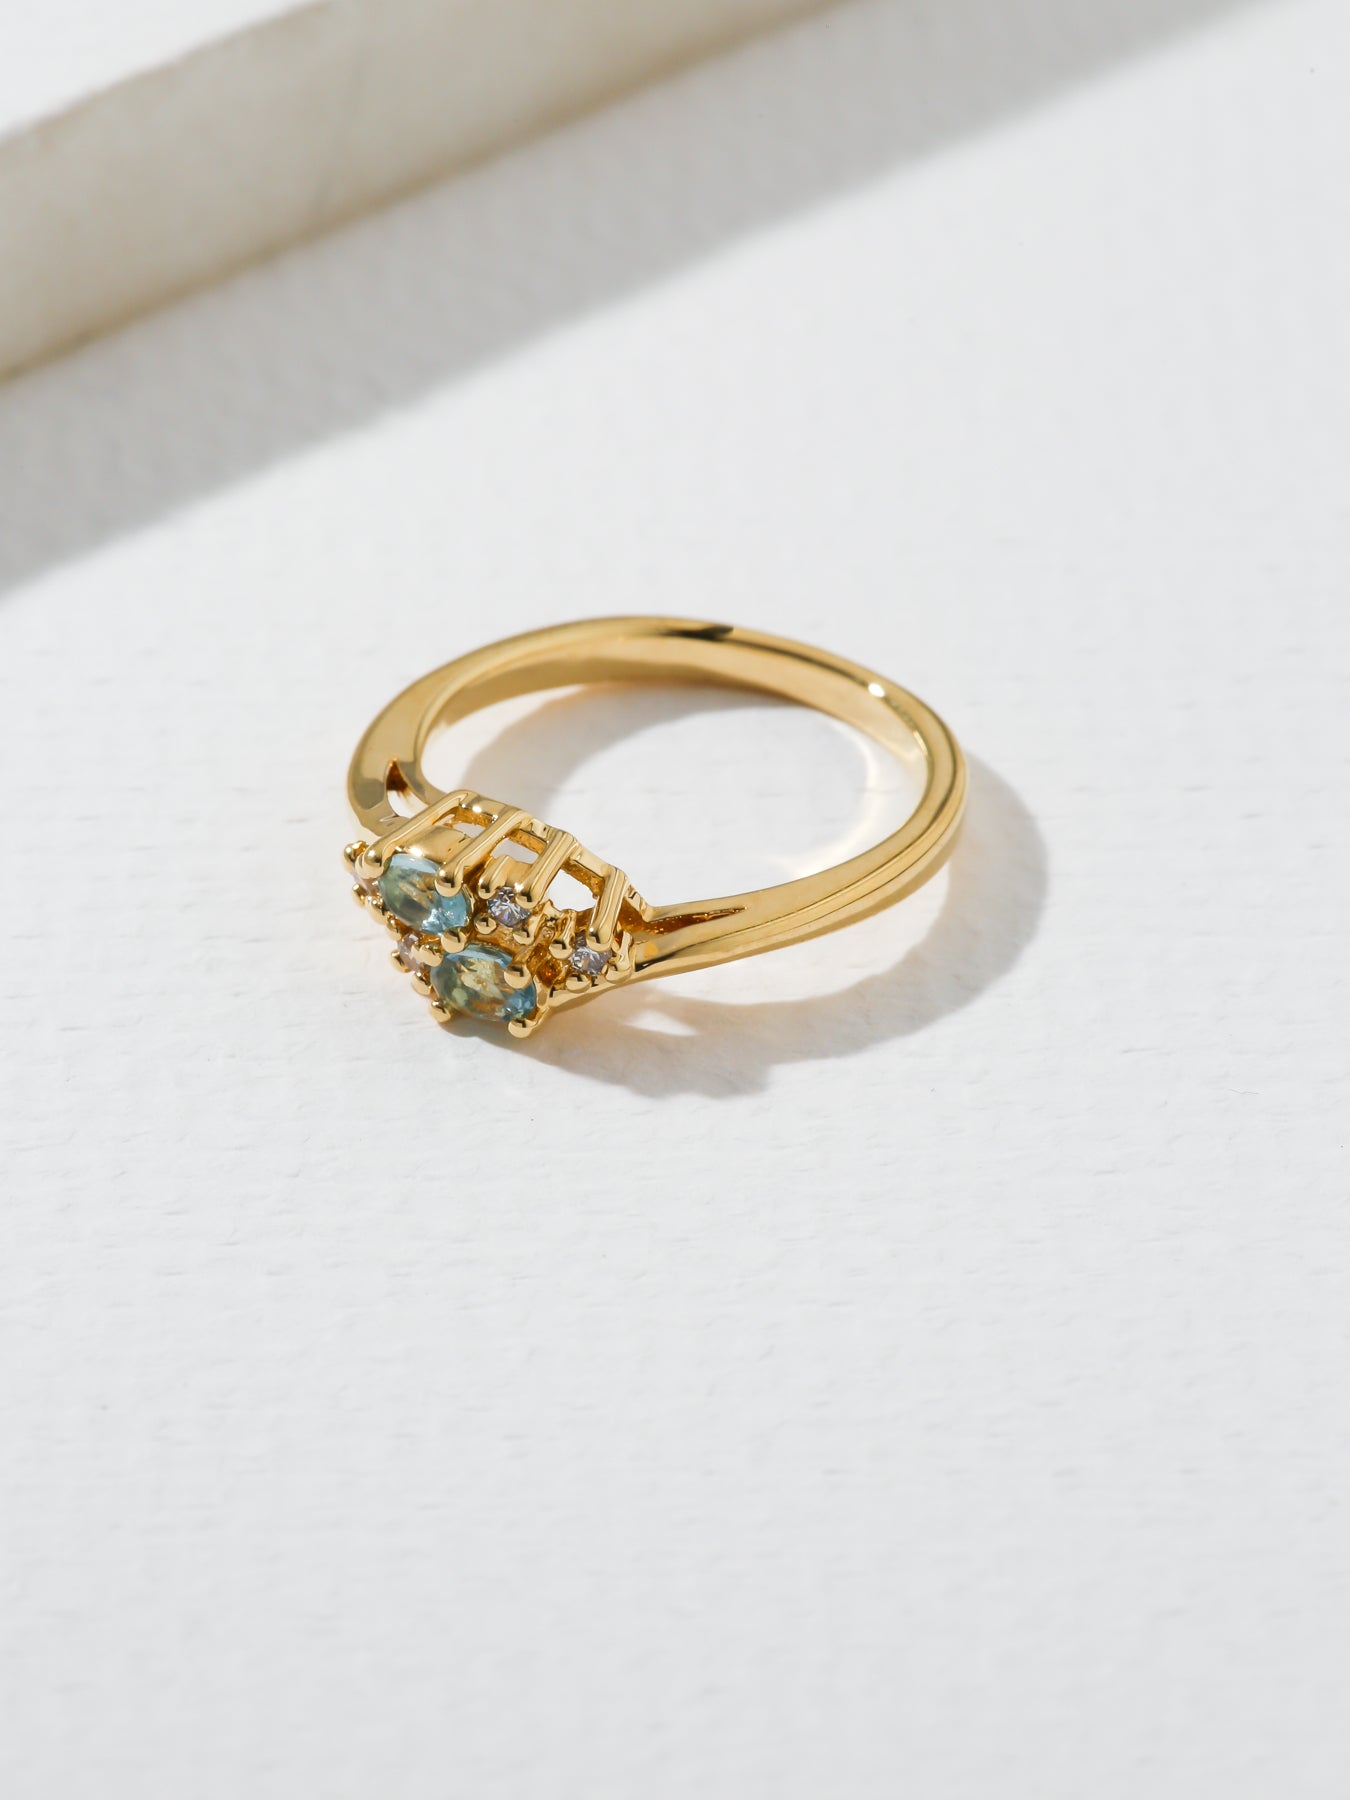 The Triumph Birthstone Ring Aquamarine